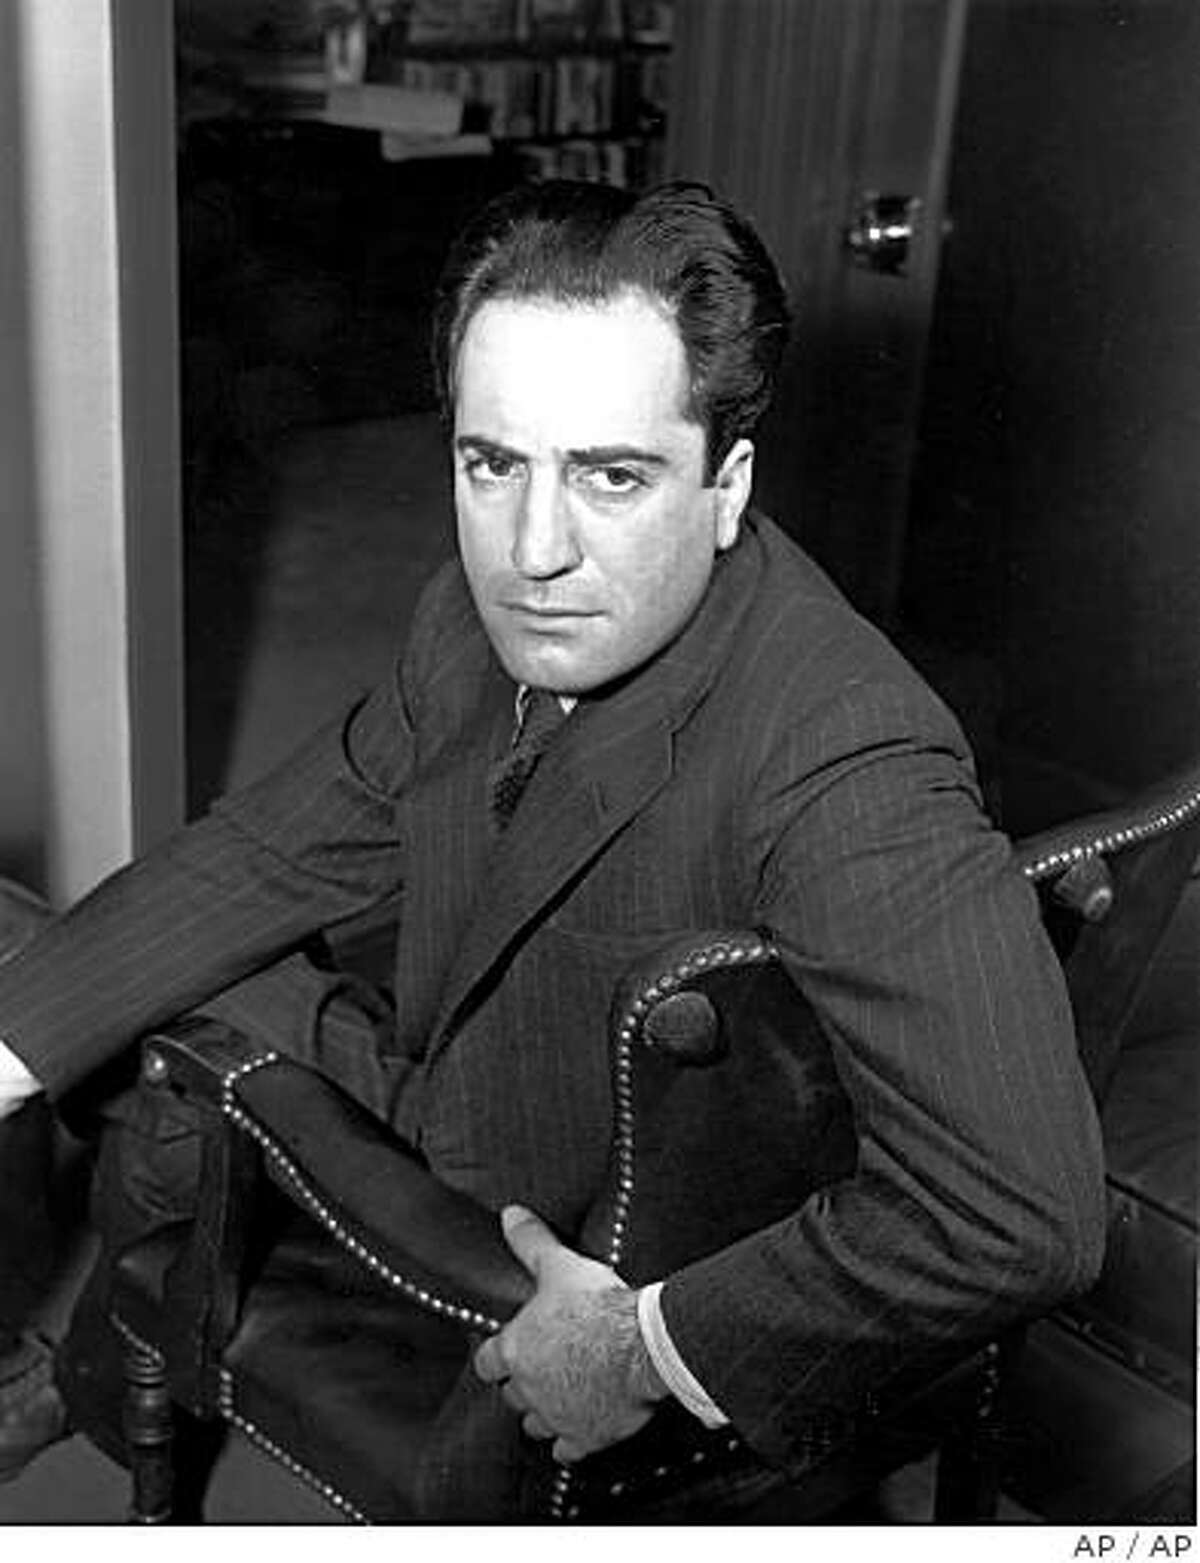 FILE--Writer William Saroyan poses in this May 2, 1941 file photo. The ashes of Saroyan were laid to rest 20 years after his death, in Fresno, Calif., March 3, 2002. Half of Saroyan's ashes were sent to Armenia after he died at age 72 May 18, 1981, and the other half had been sitting in obscurity on a Fresno chapel's shelf. (AP Photo/File)